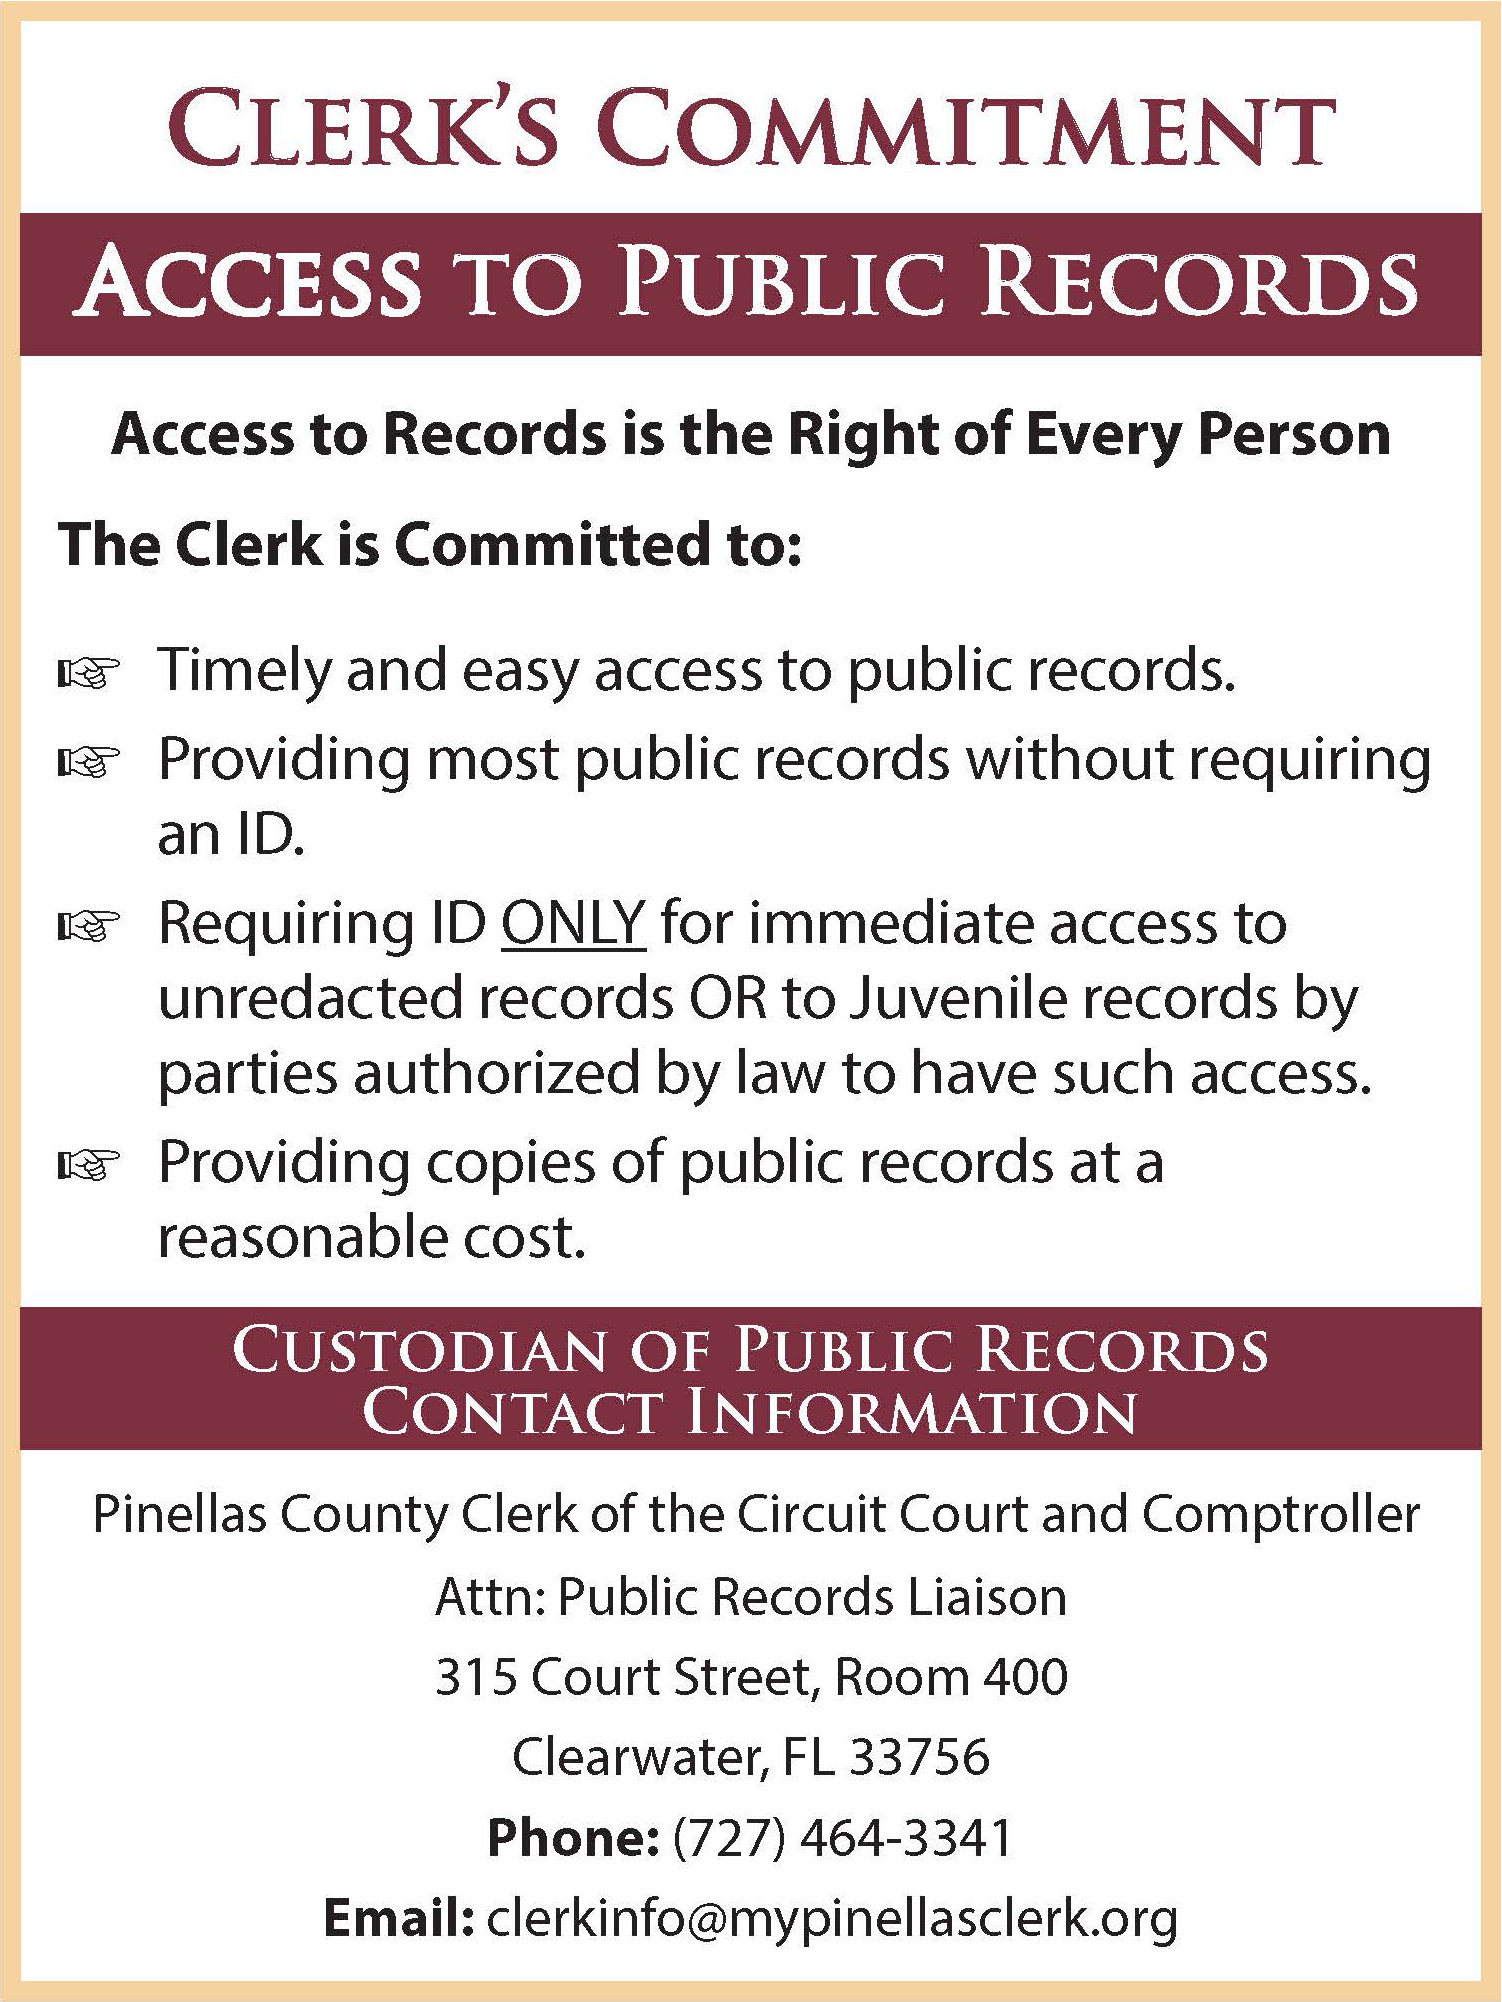 Clerk's Commitment: Access to Public Records